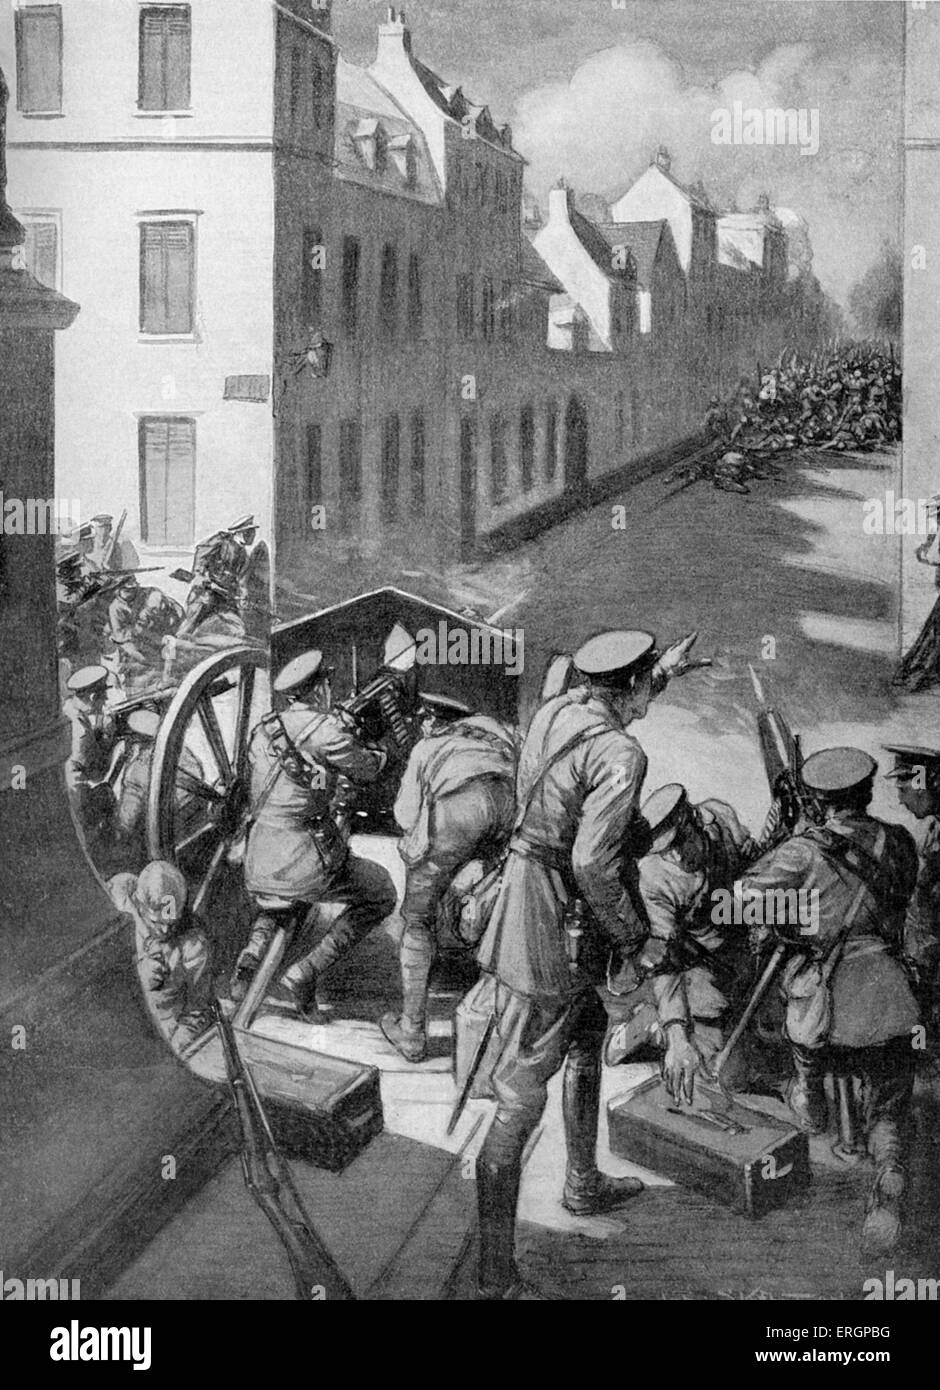 Battle of Le Cateau. German infantry advancing into the town of Landrecies, France, are attacked by British artillery, - Stock Image